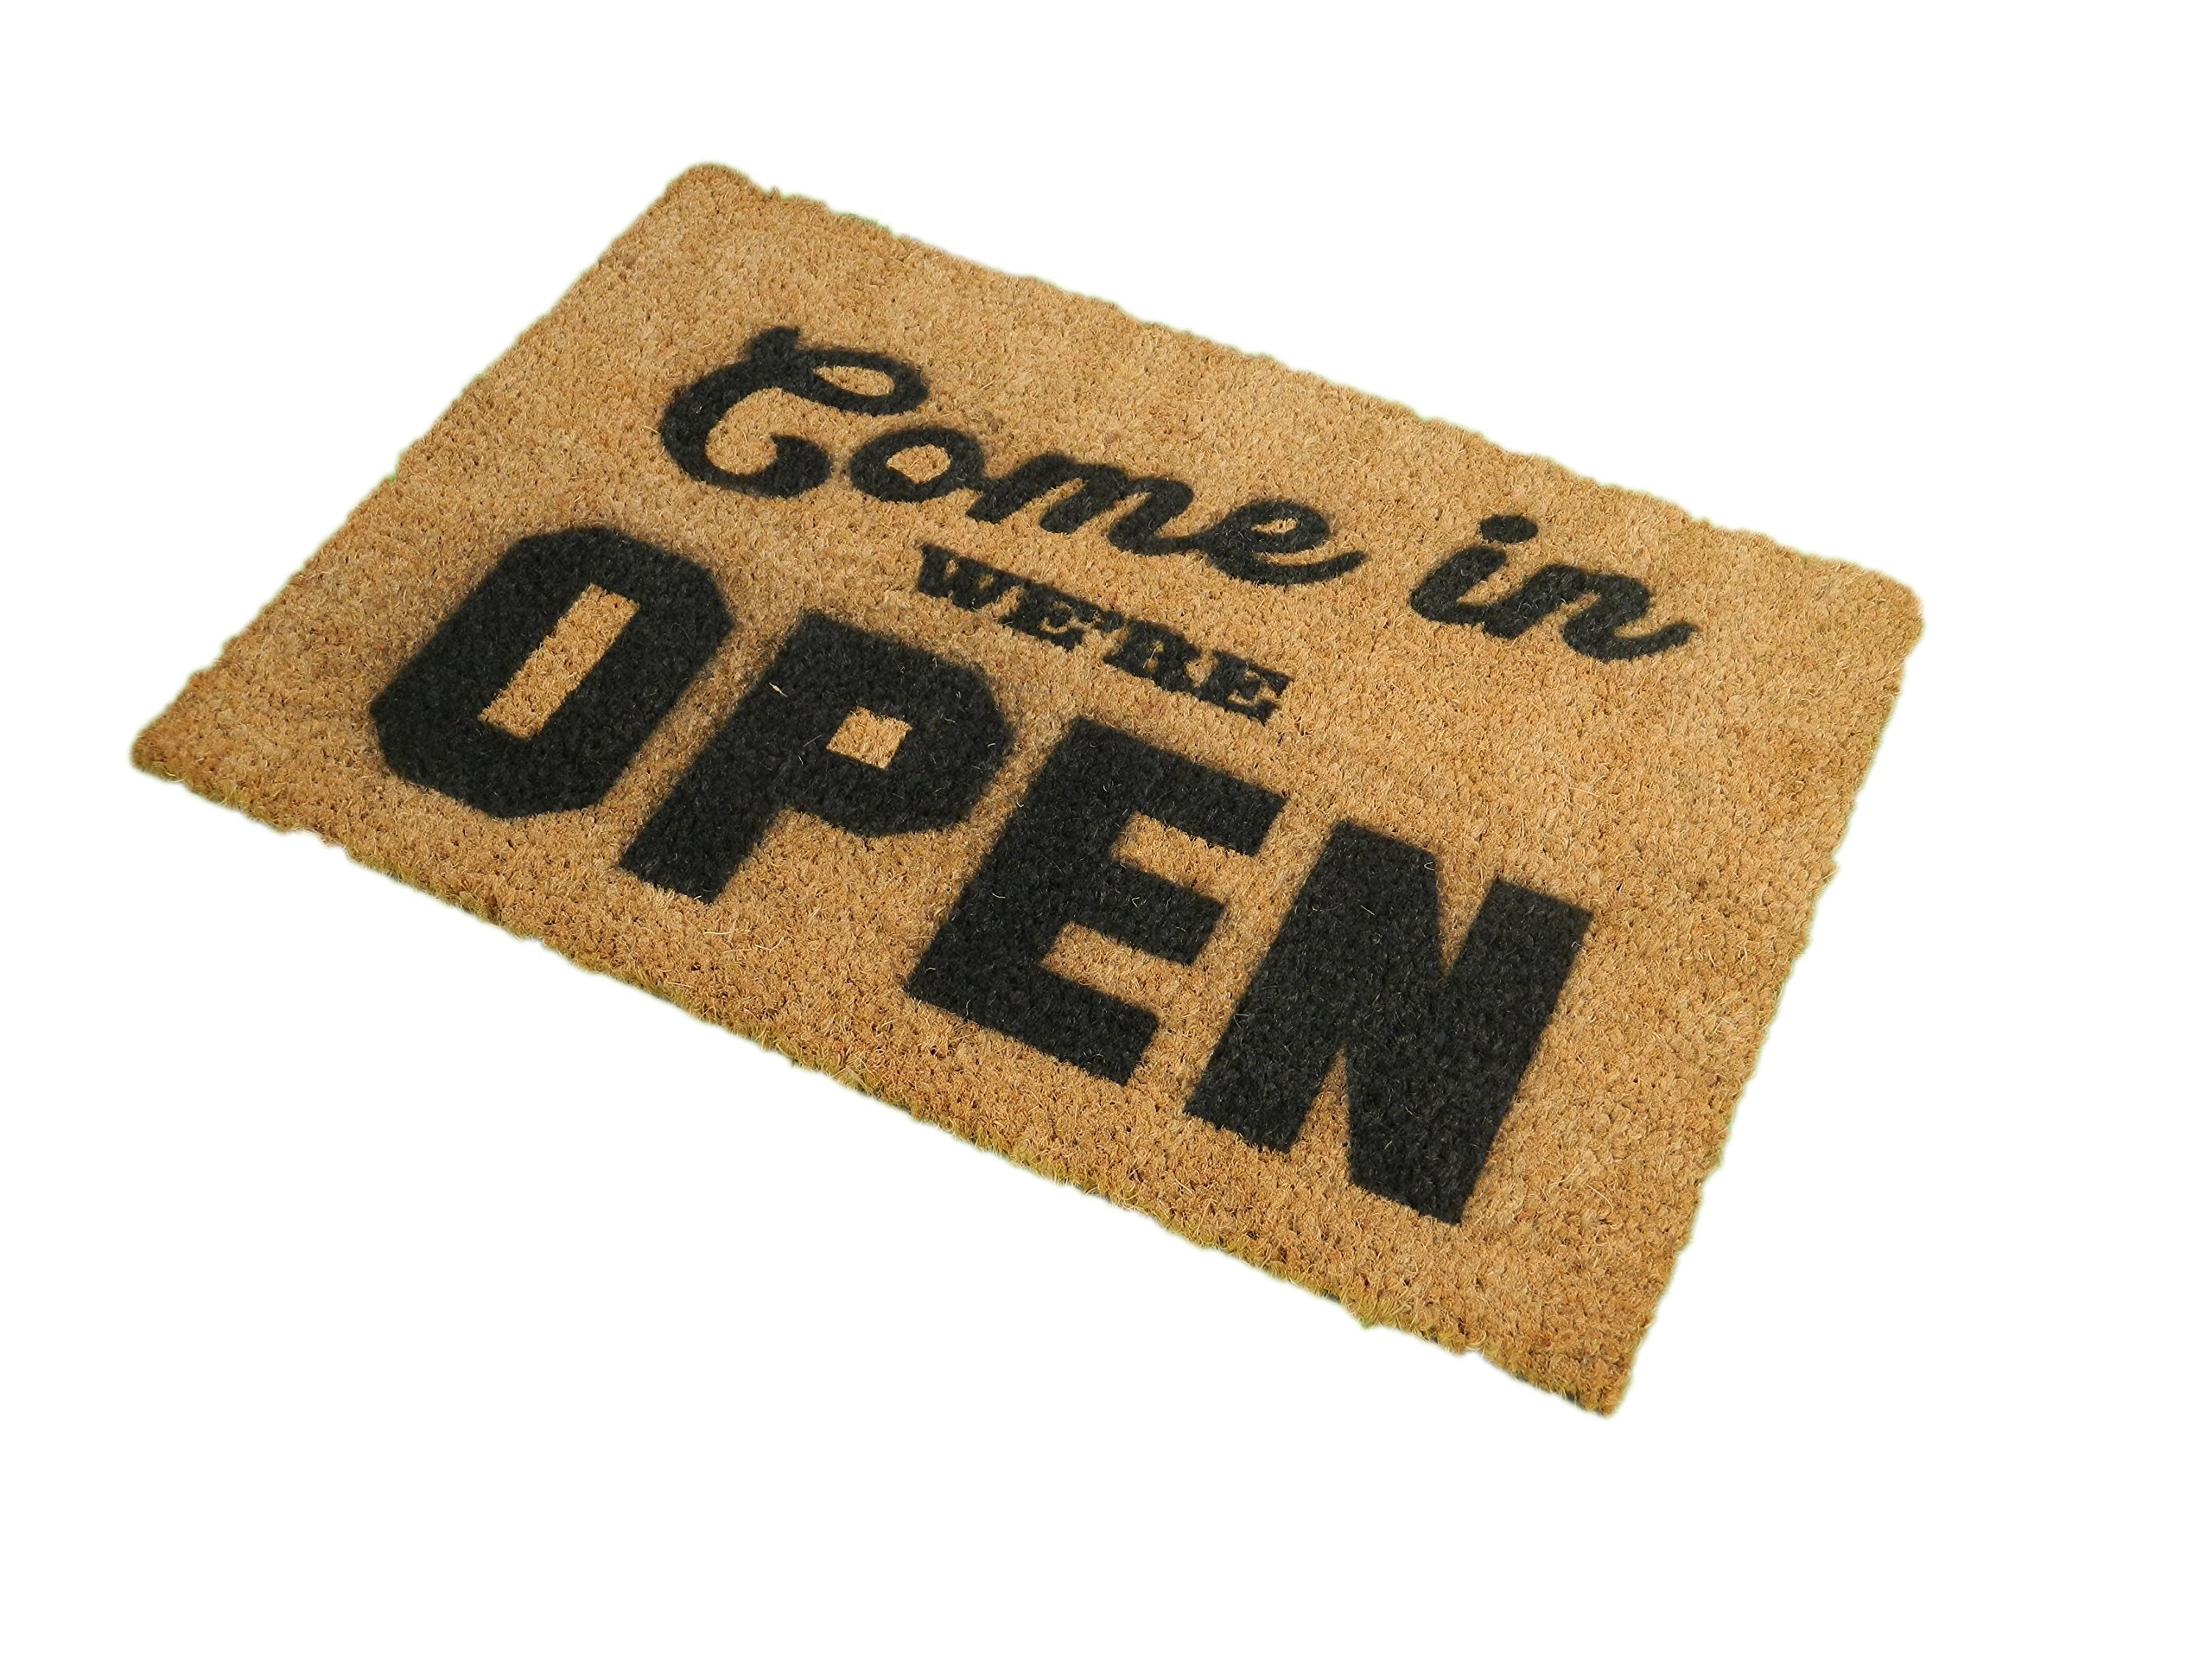 CKB Ltd Come In We'Re Open Novelty Doormat Unique Doormats Front/Back Funny Door Mats Made With A Non-Slip Pvc Backing - Natural Coir - Indoor & Outdoor